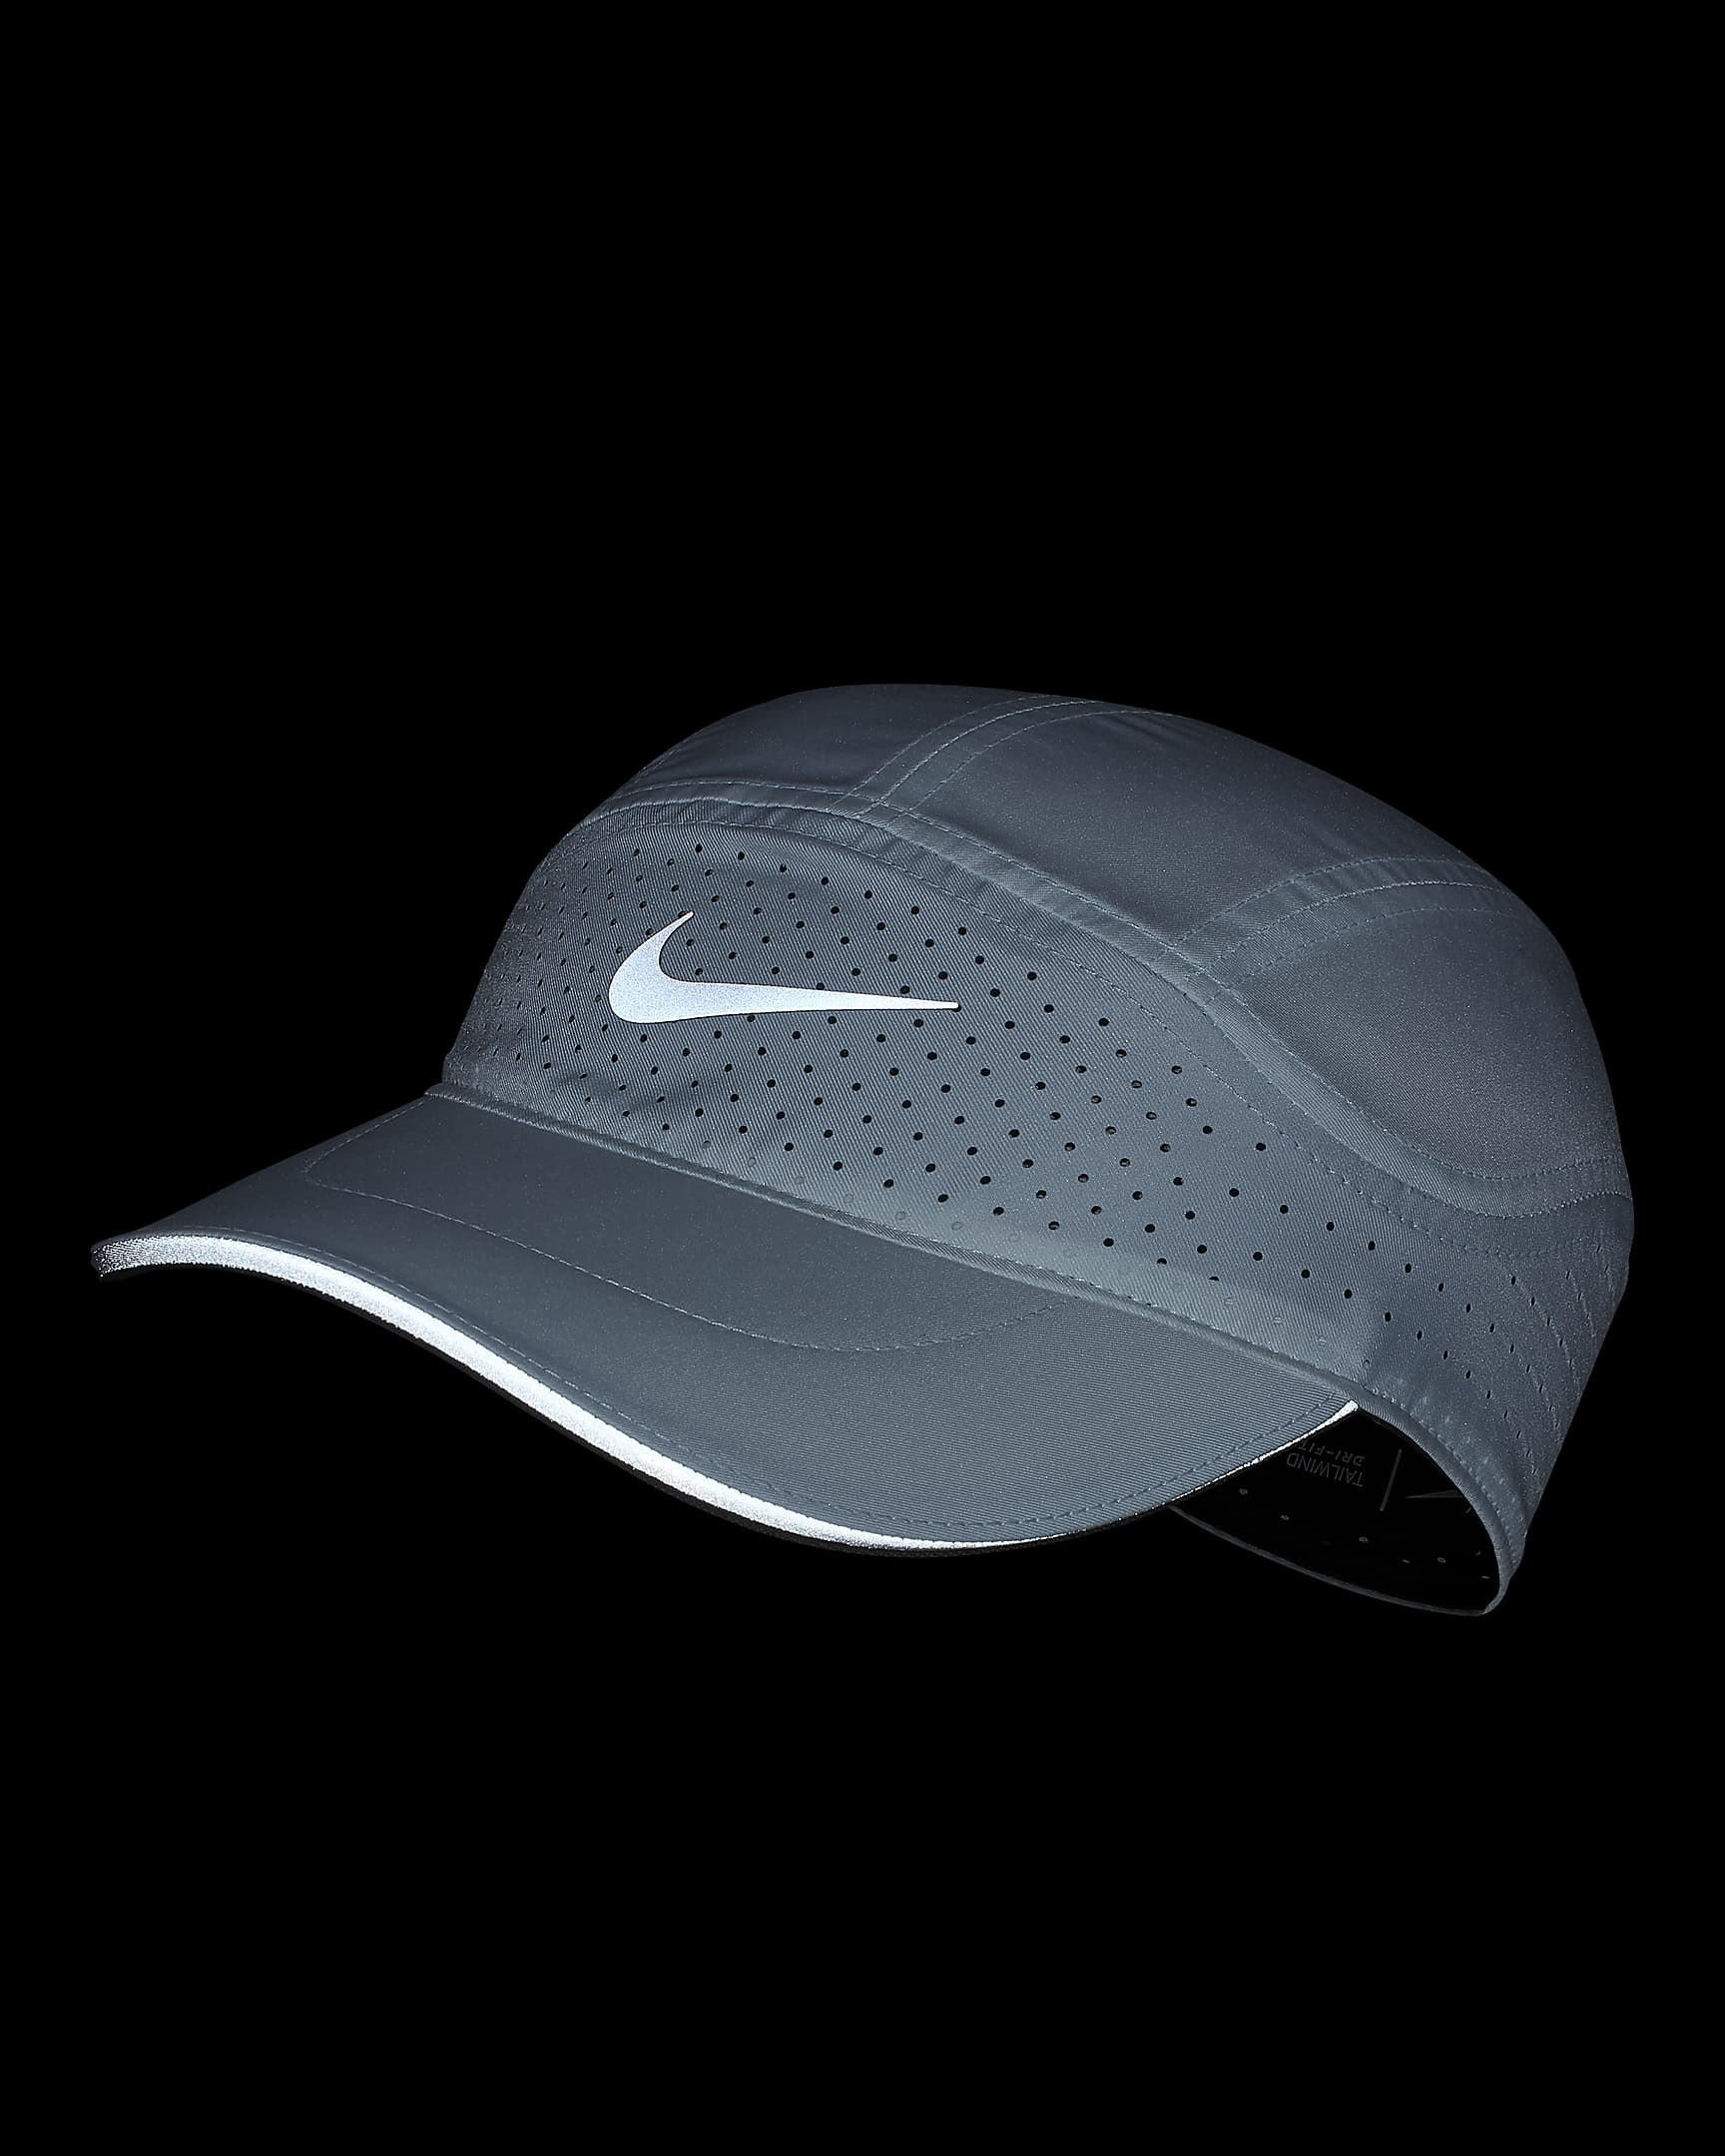 White Nike cap in dark to show reflective detailing